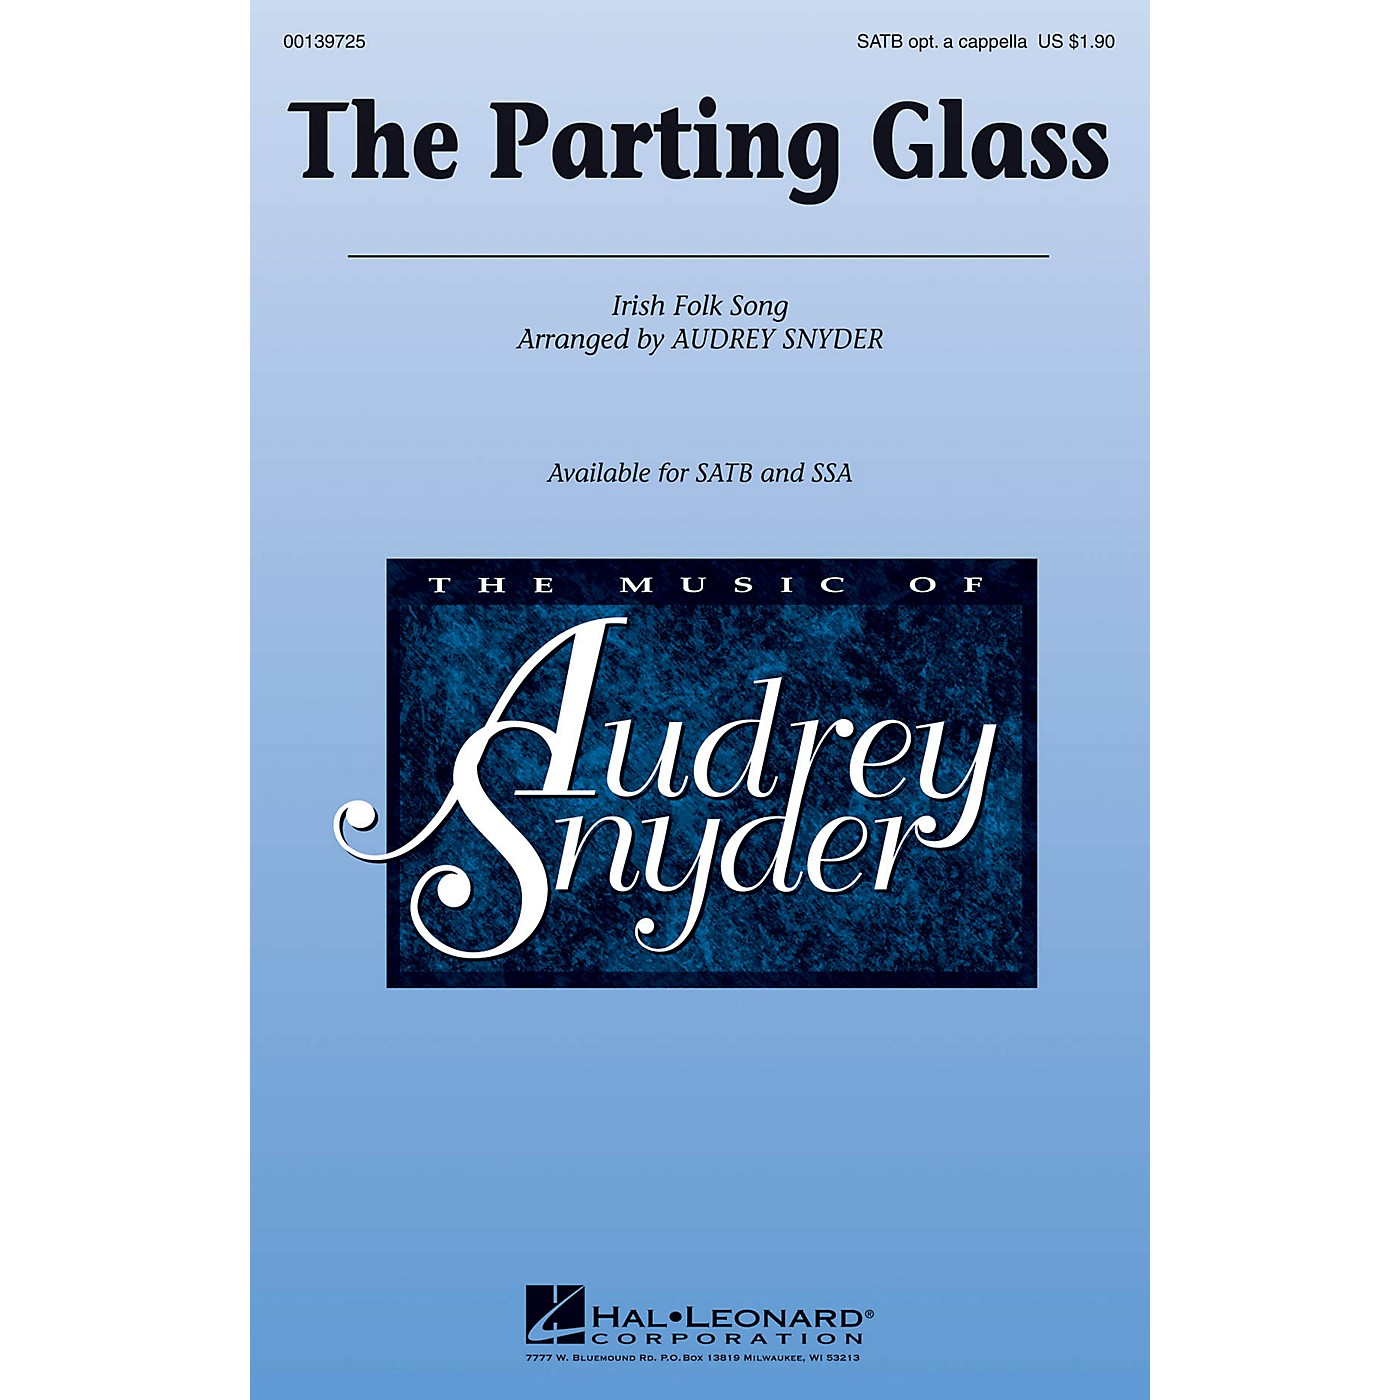 Hal Leonard The Parting Glass SSA Optional a cappella Arranged by Audrey Snyder thumbnail